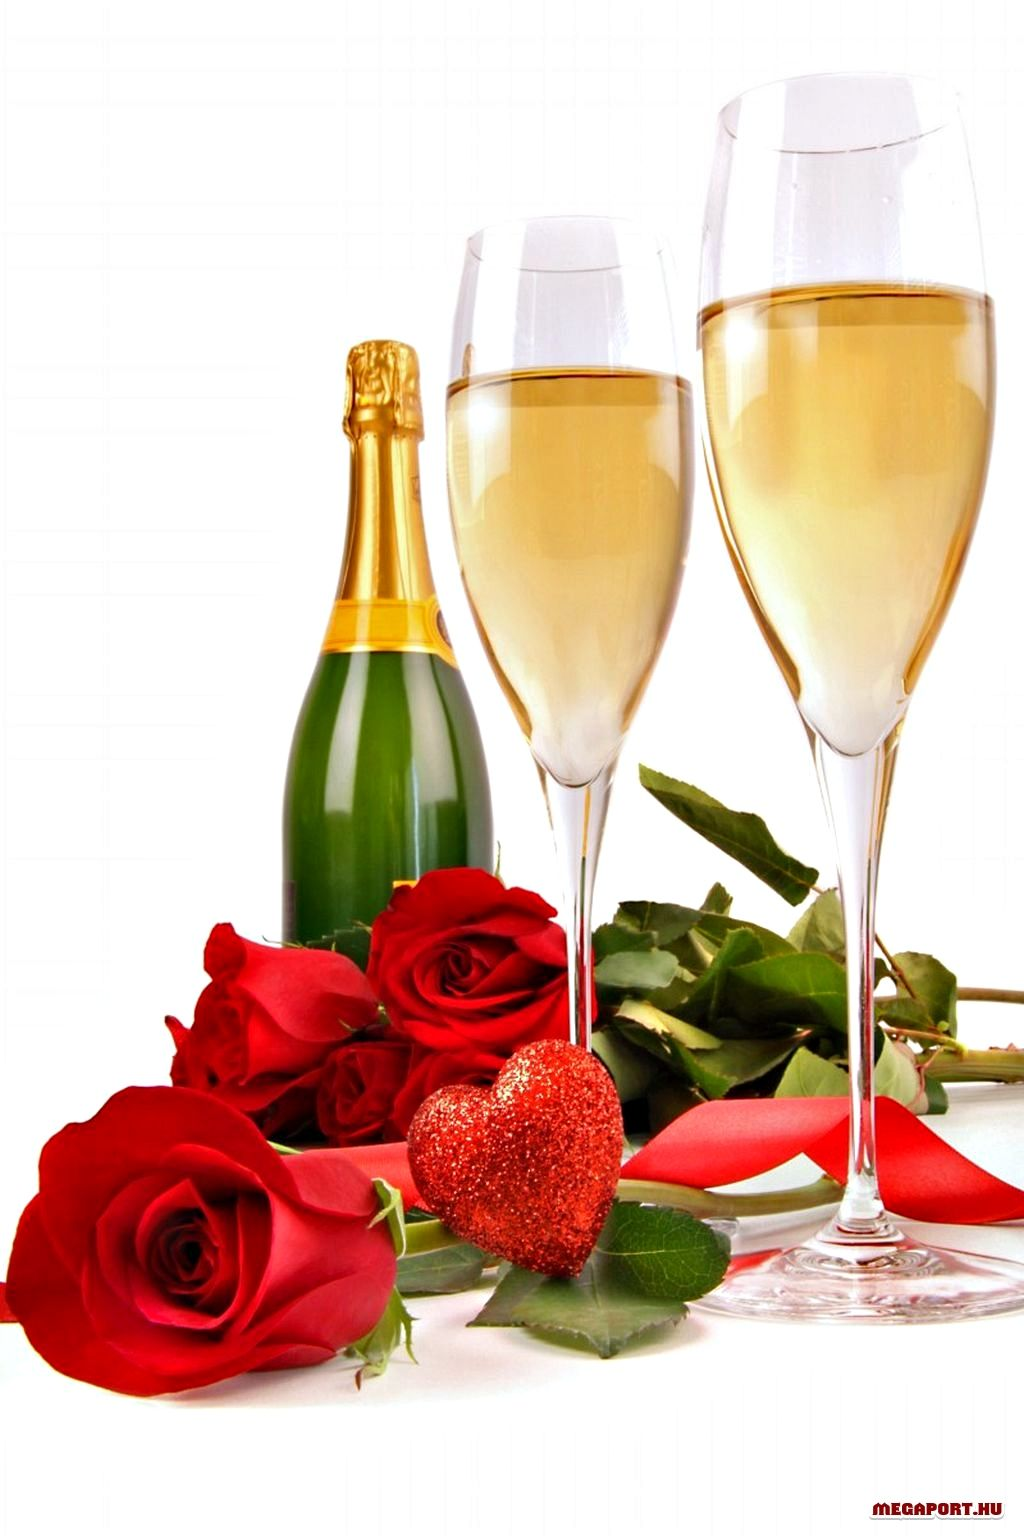 Beautiful Hearts Animations Champagne Wine Bottle Images Valentines Day Hearts